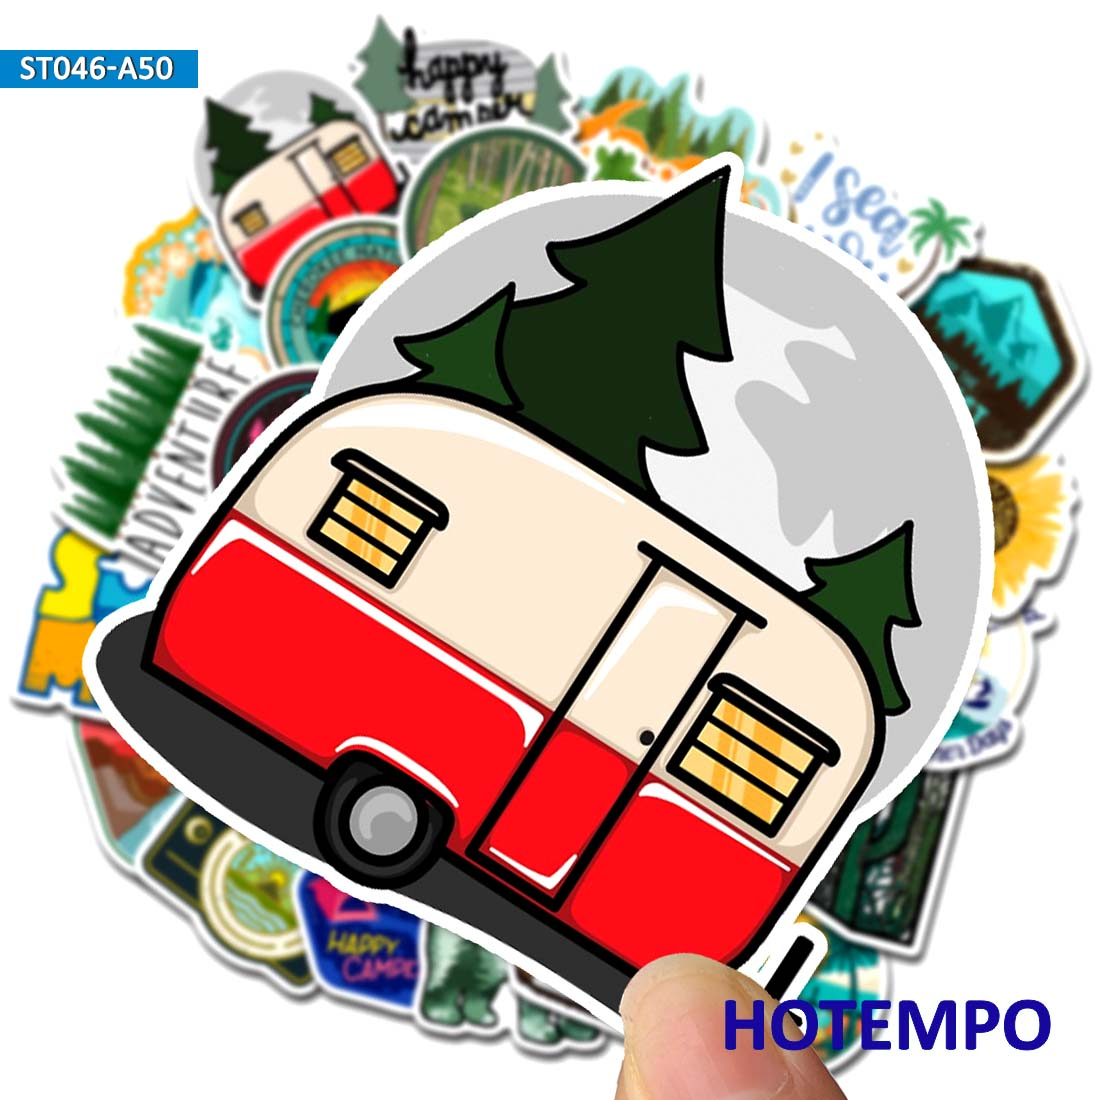 50pcs Outdoor Wild Expedition Stickers Adventure Camping Travel Landscape Stickers For Mobile Phone Laptop Luggage Bike Stickers